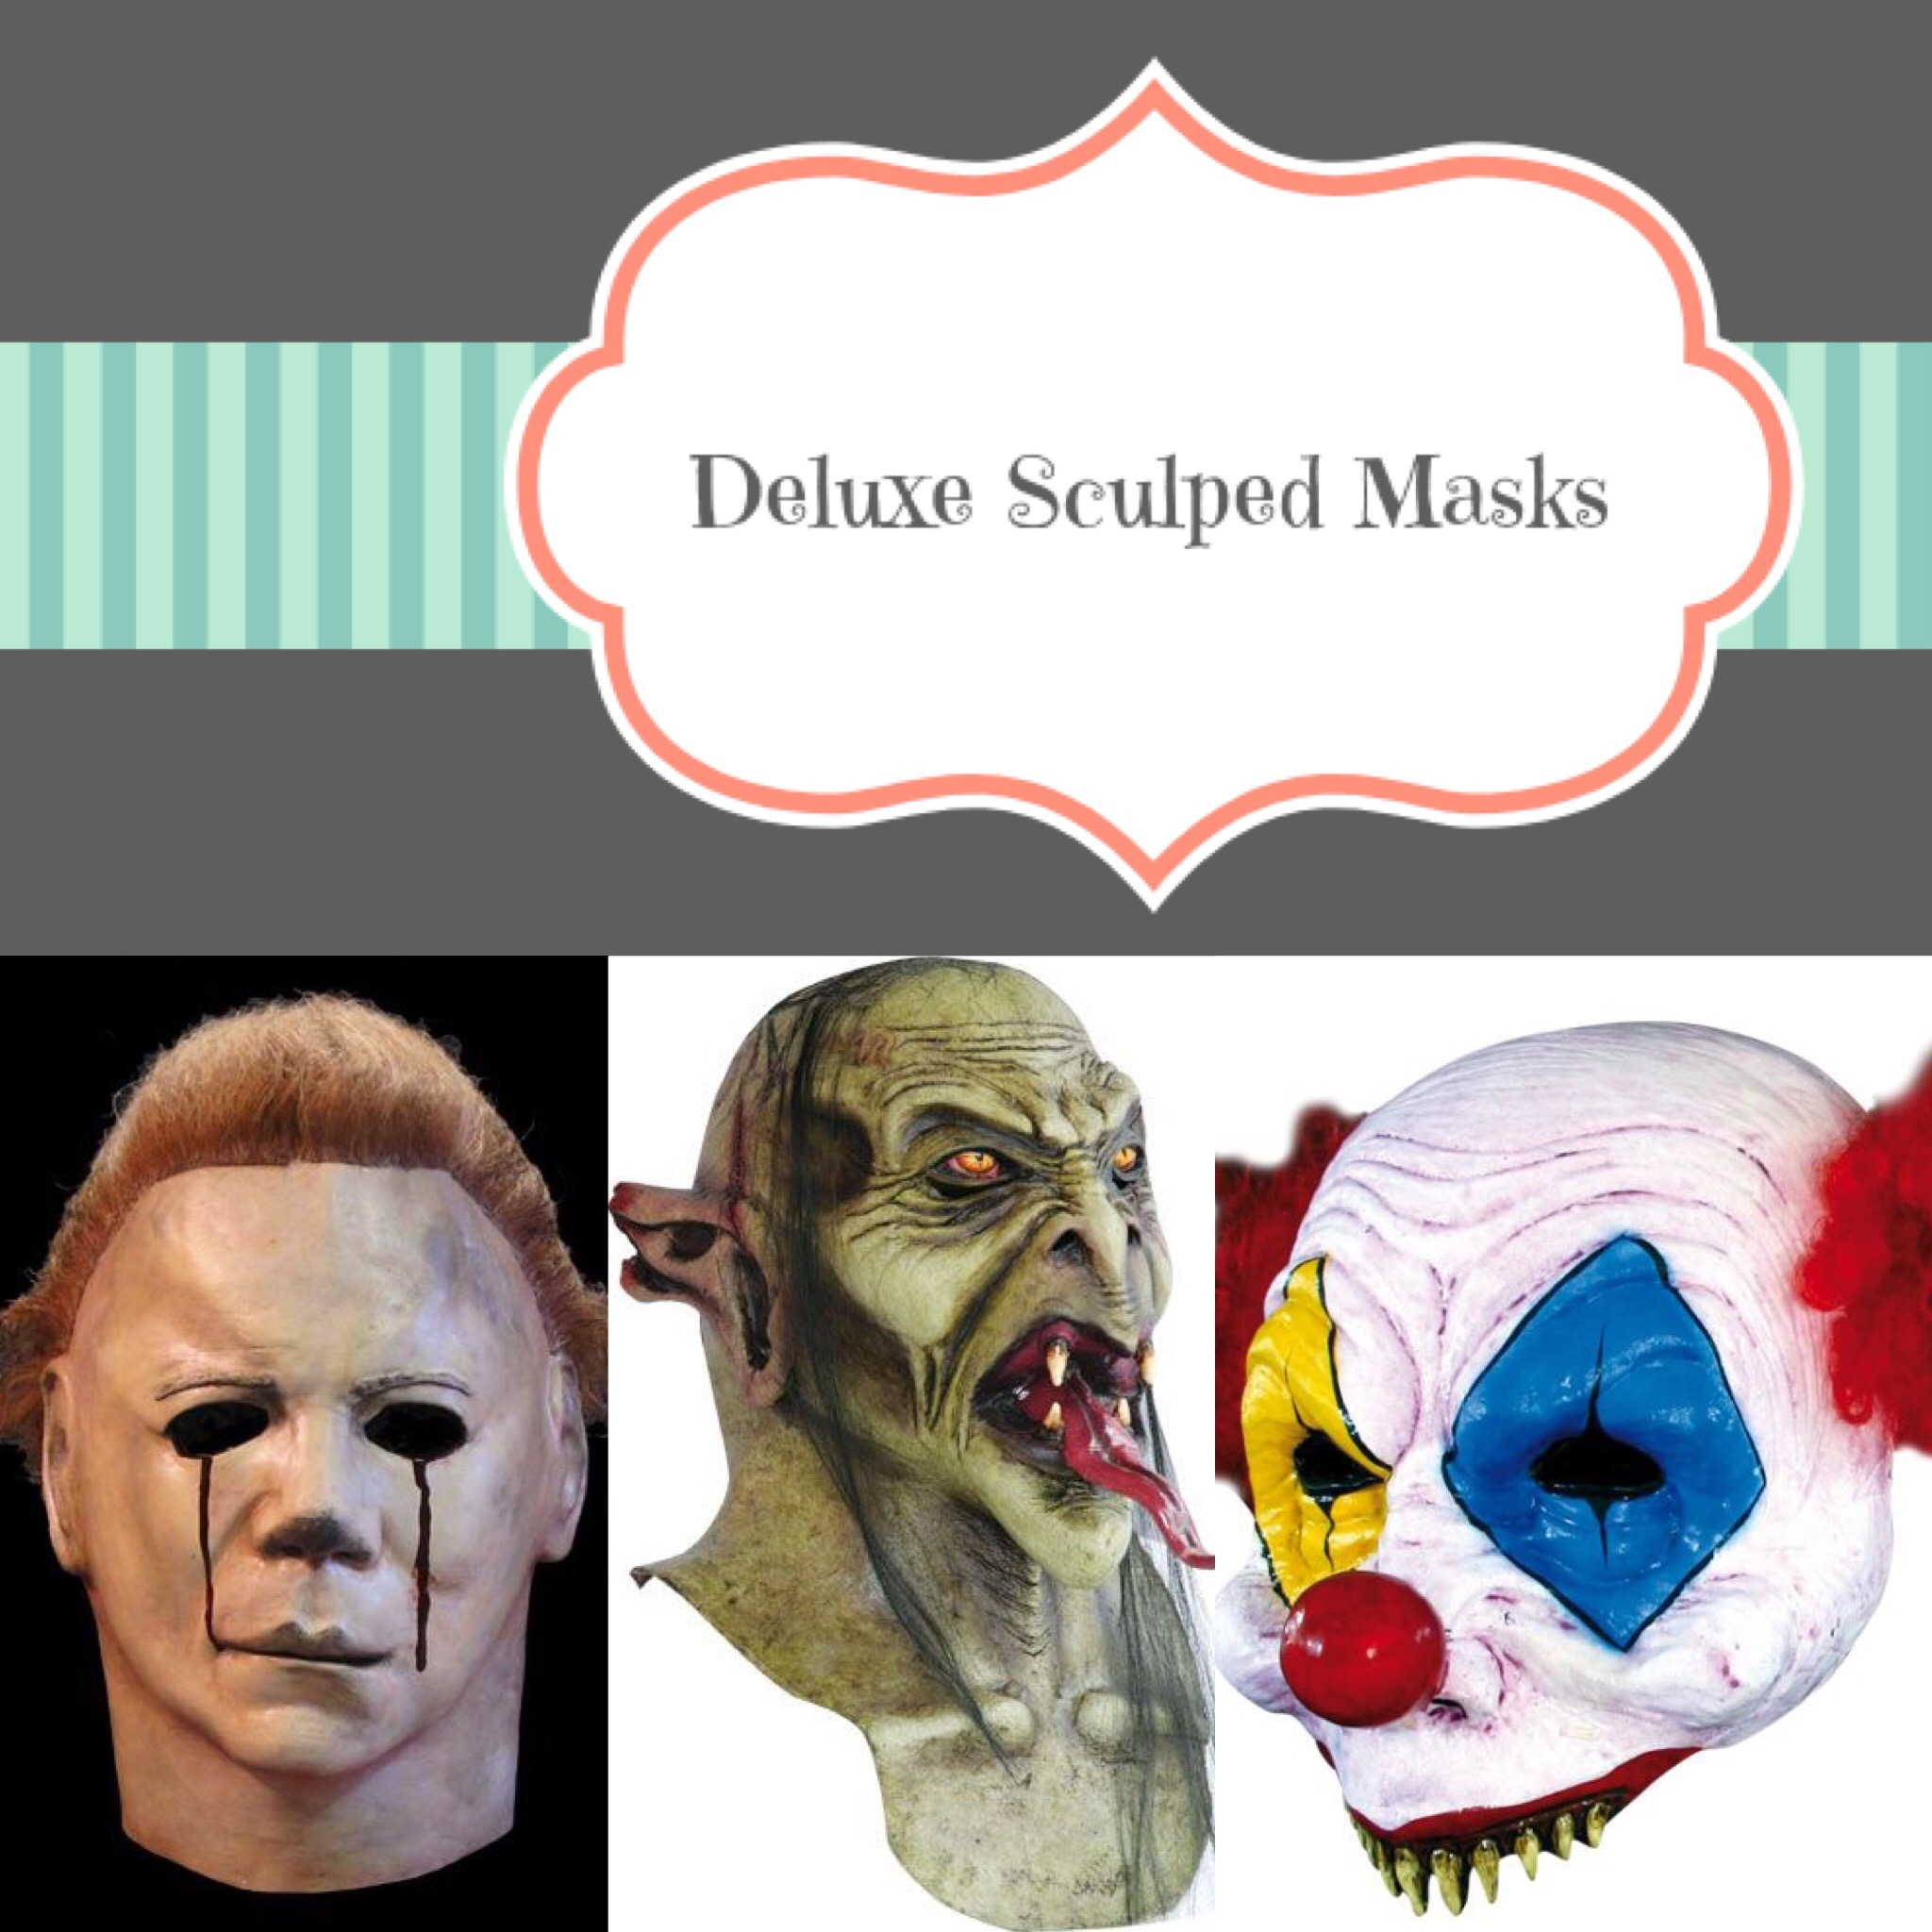 Deluxe Sculpted Masks